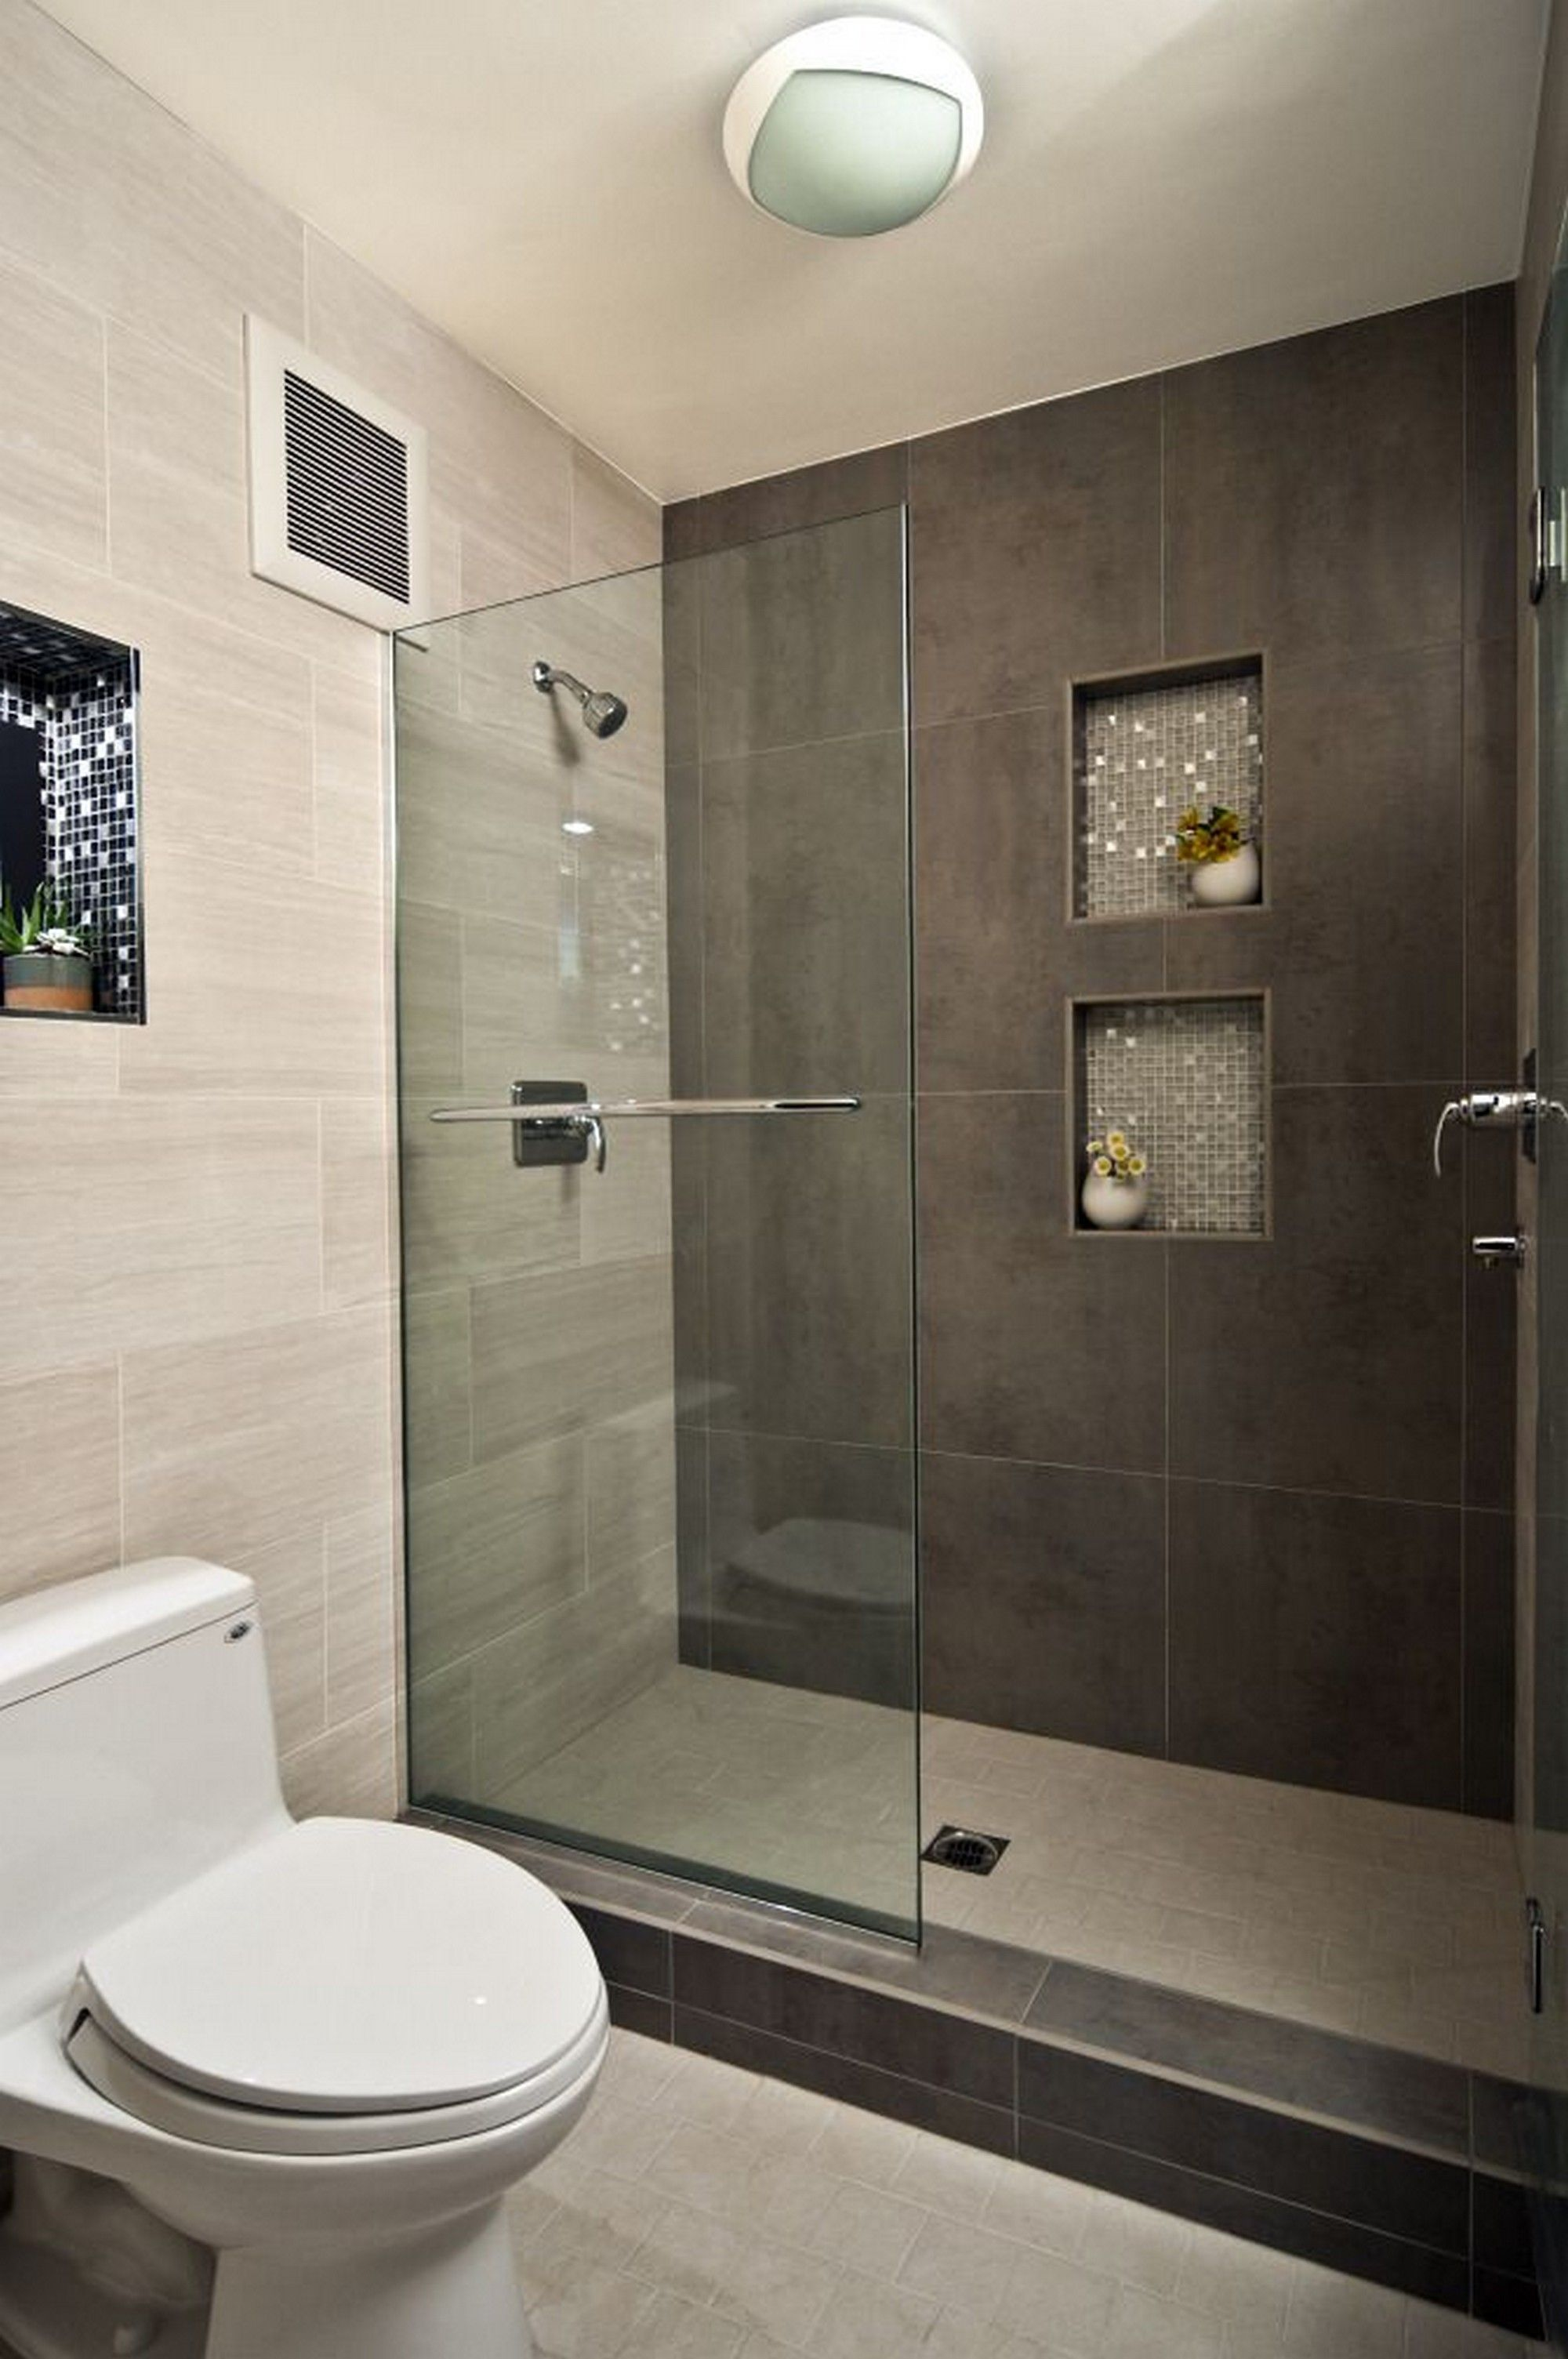 modern bathroom design ideas with walk in shower - Small Bathroom Design Ideas Images